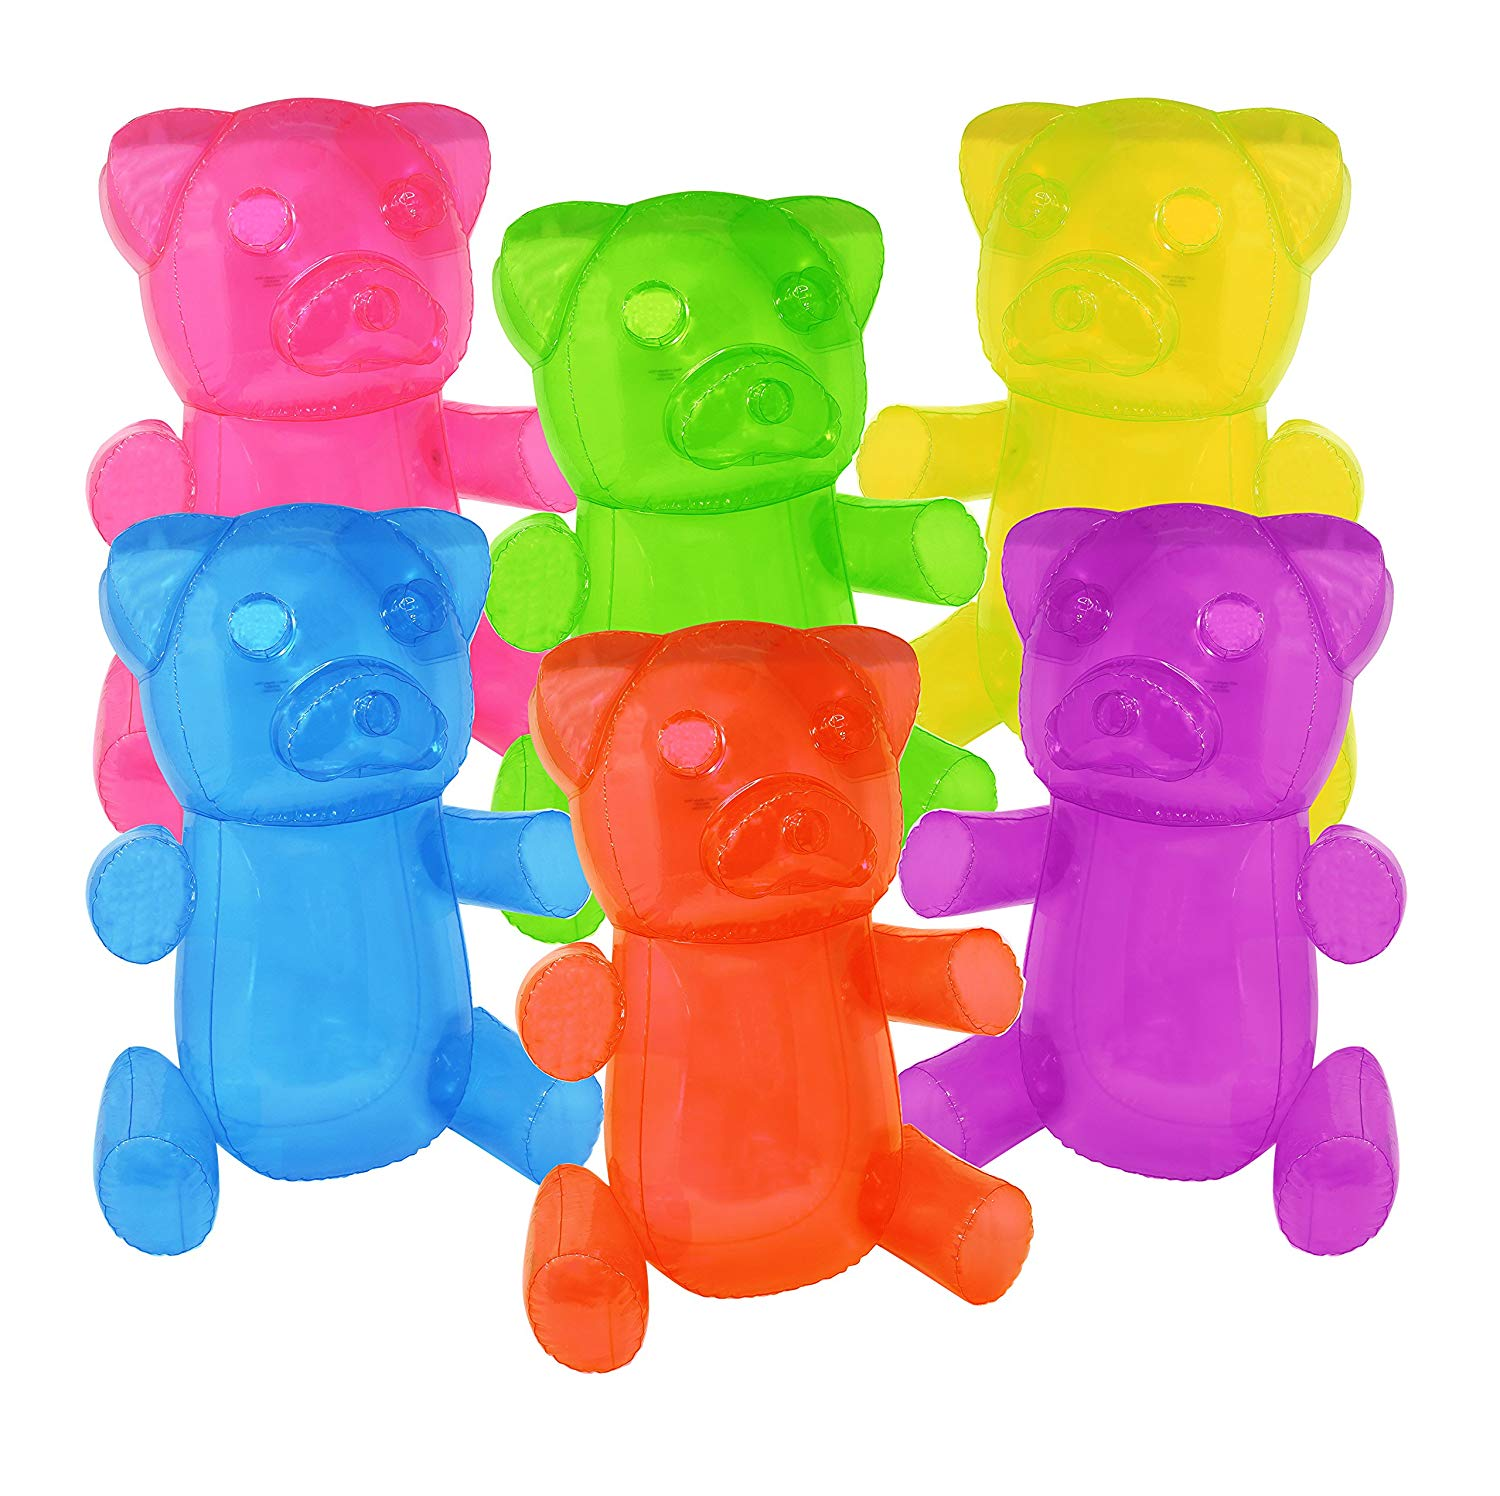 "SNInc. 24"" Inflatable Gummy Bears Fun Party Decoration in Assorted Random Colors (Pack of 3 Bears)"